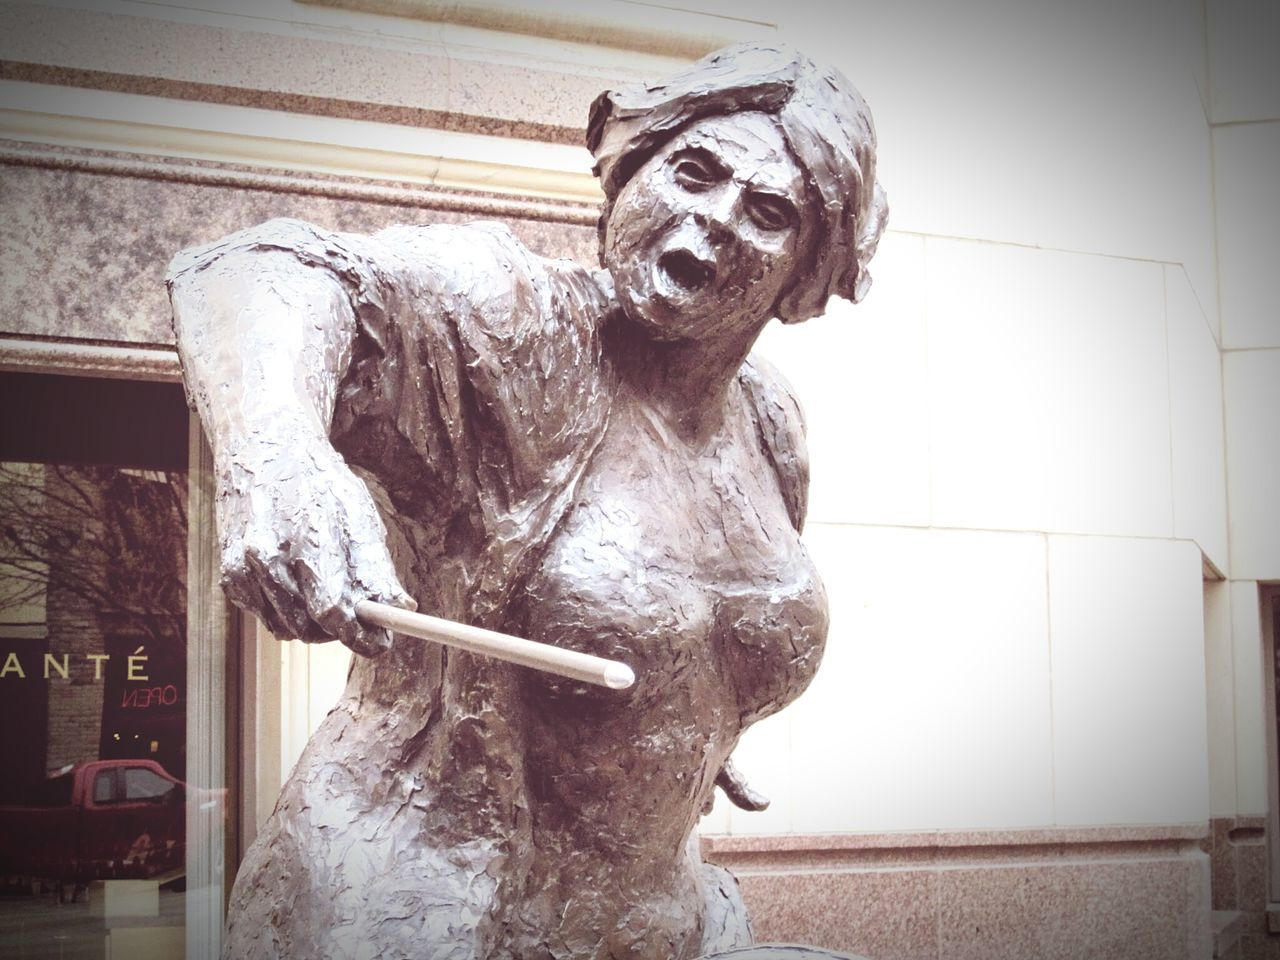 Statue Sculpture Art And Craft Human Representation Art Creativity City Outdoors Stone Material Monument Mythology History Weathered Austin Texas Capital Cities  Capitol Feminism Fierce HERO Heroine Arts Culture And Entertainment Architecture Exploring Adventure